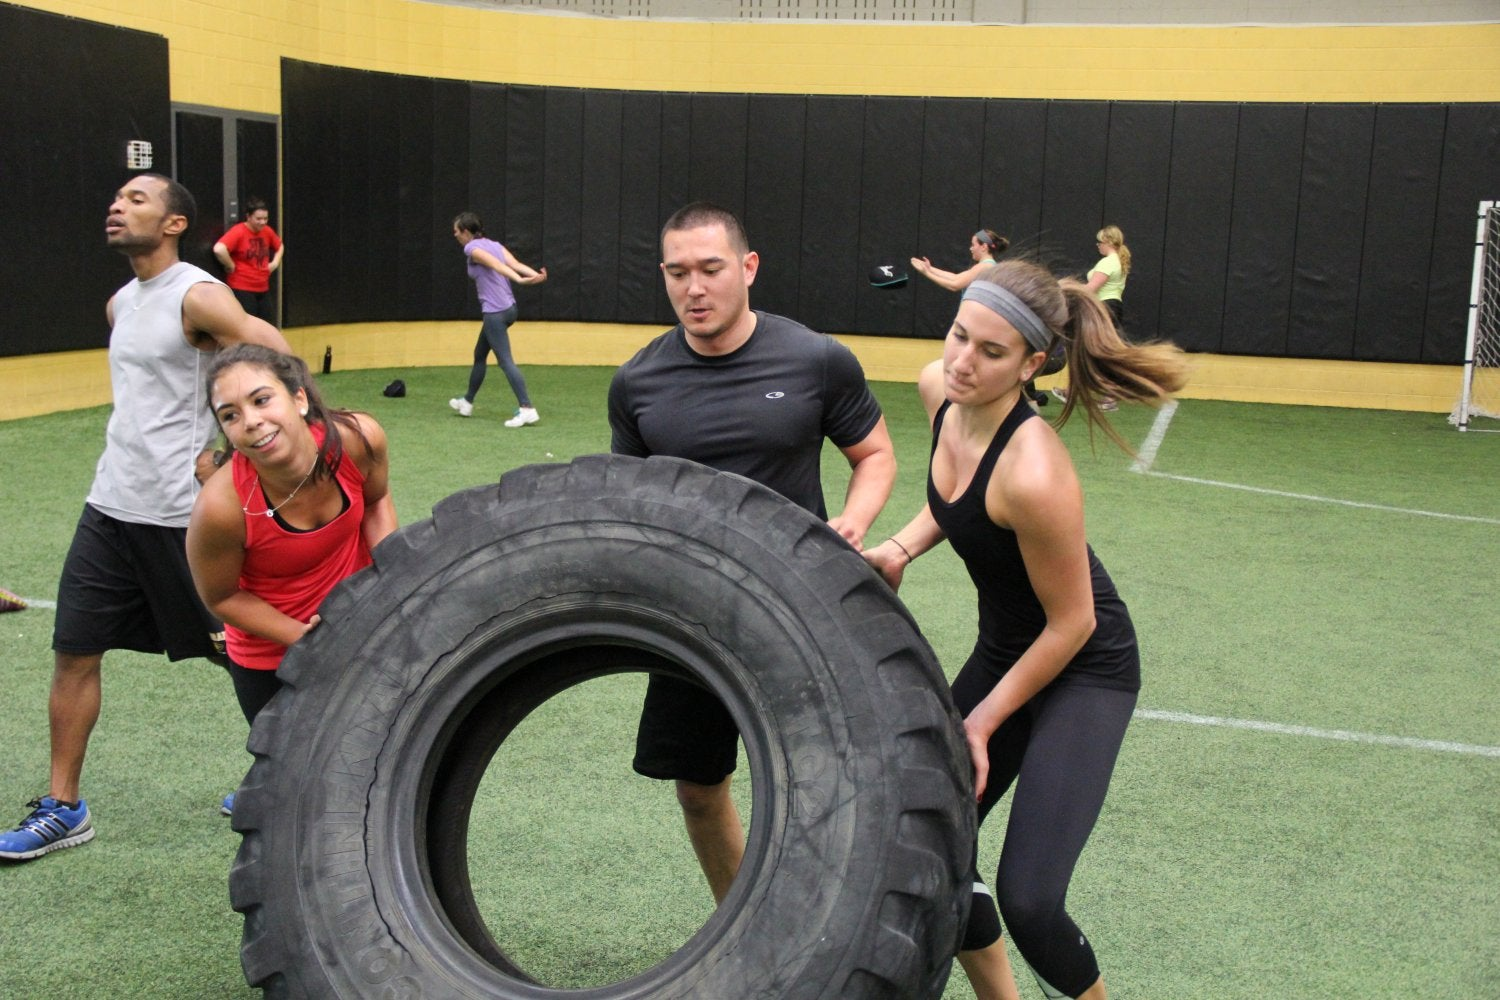 a few students working together to turn over a tire